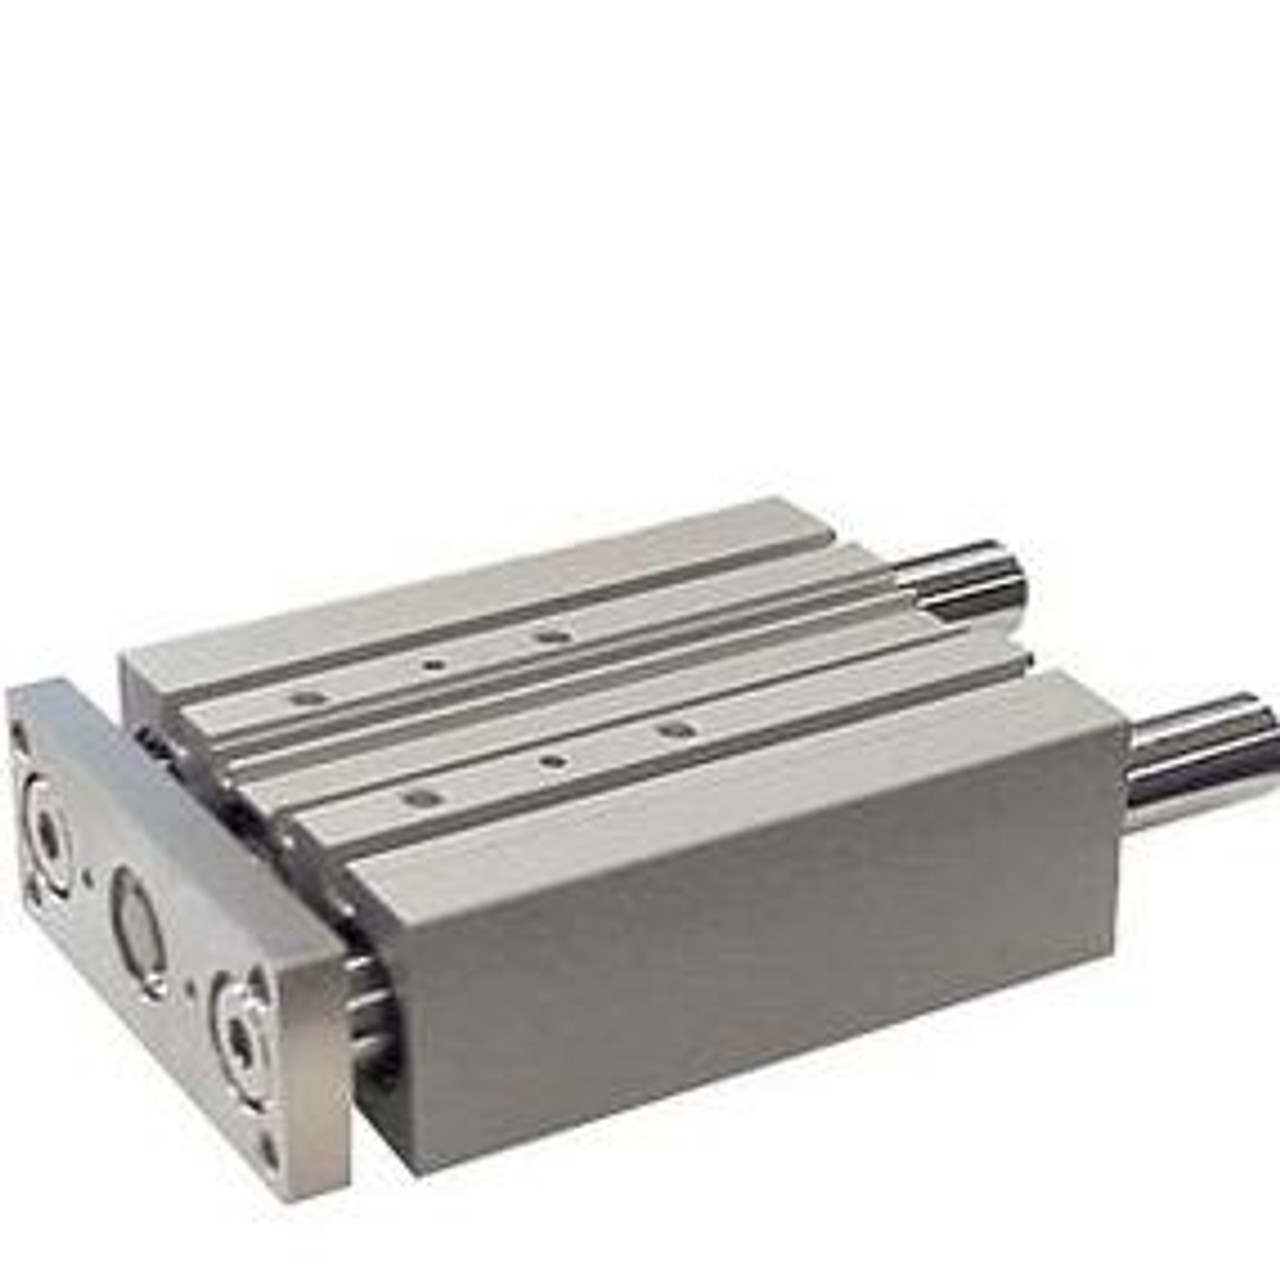 NEW SMC MGPM25-25 Slide Bearing Compact Guide Cylinder